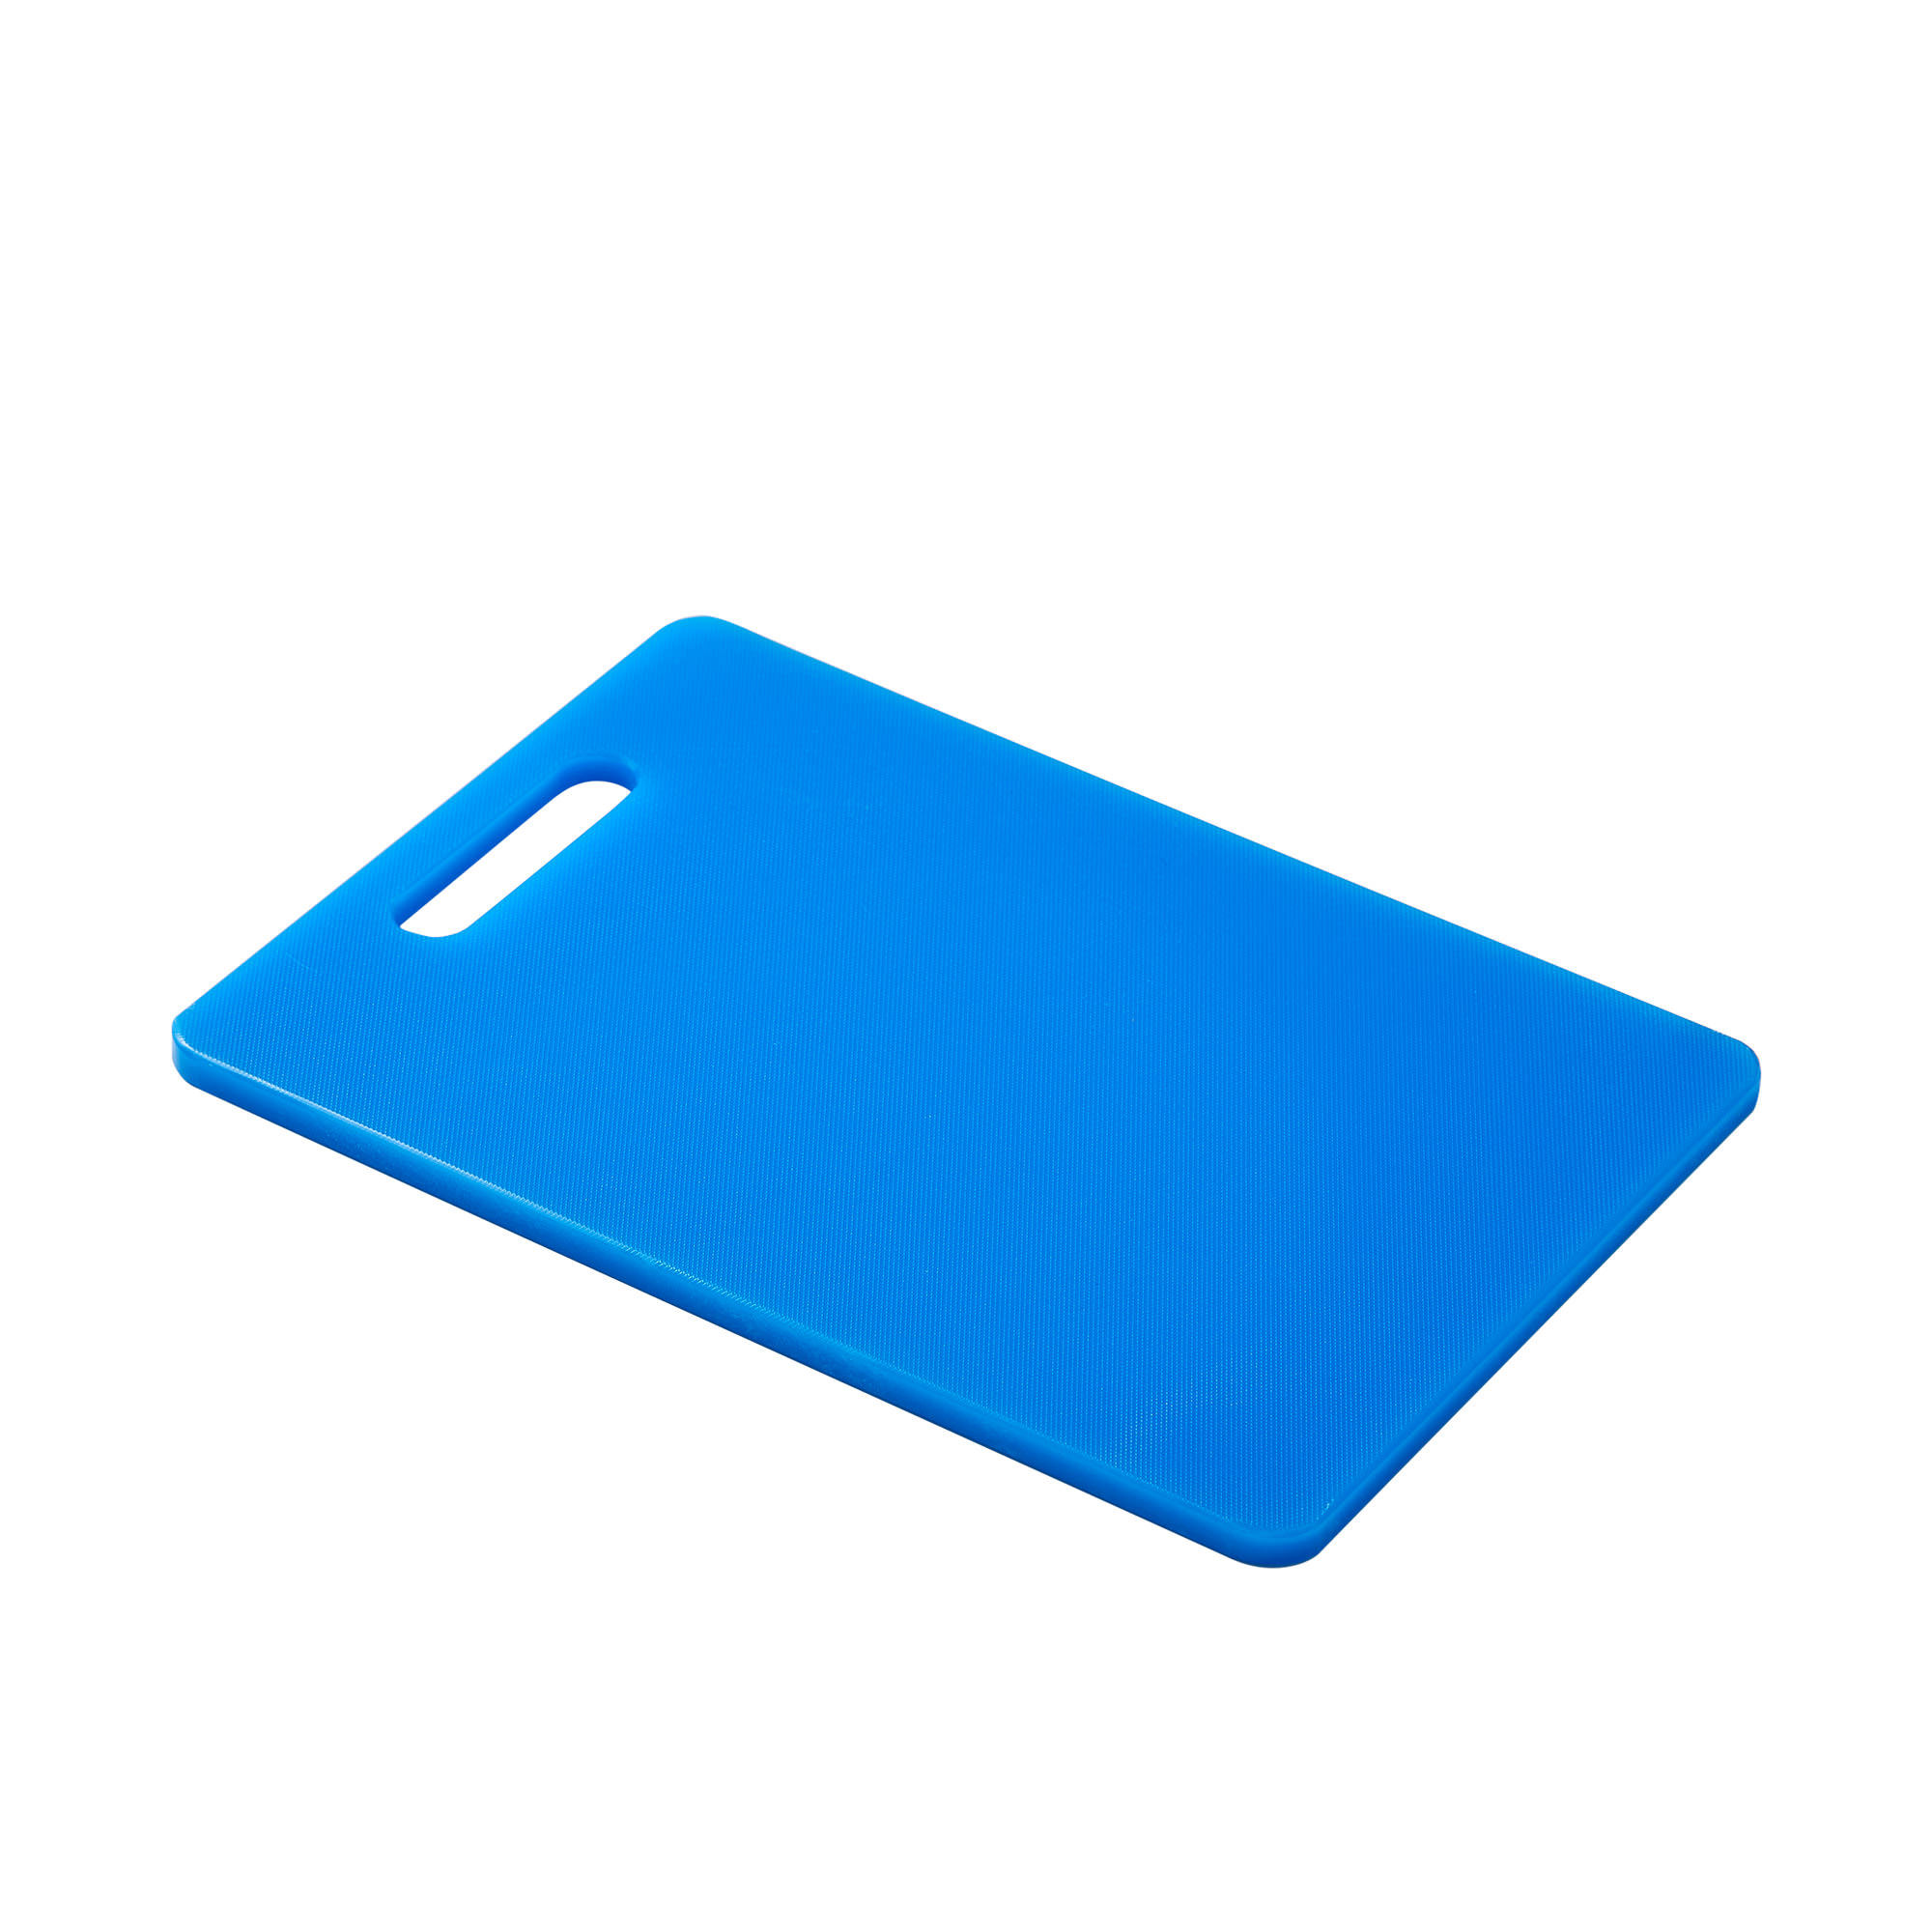 Kitchen <b>Pro</b> Classic Cutting Board 36x25x1.2cm Blue